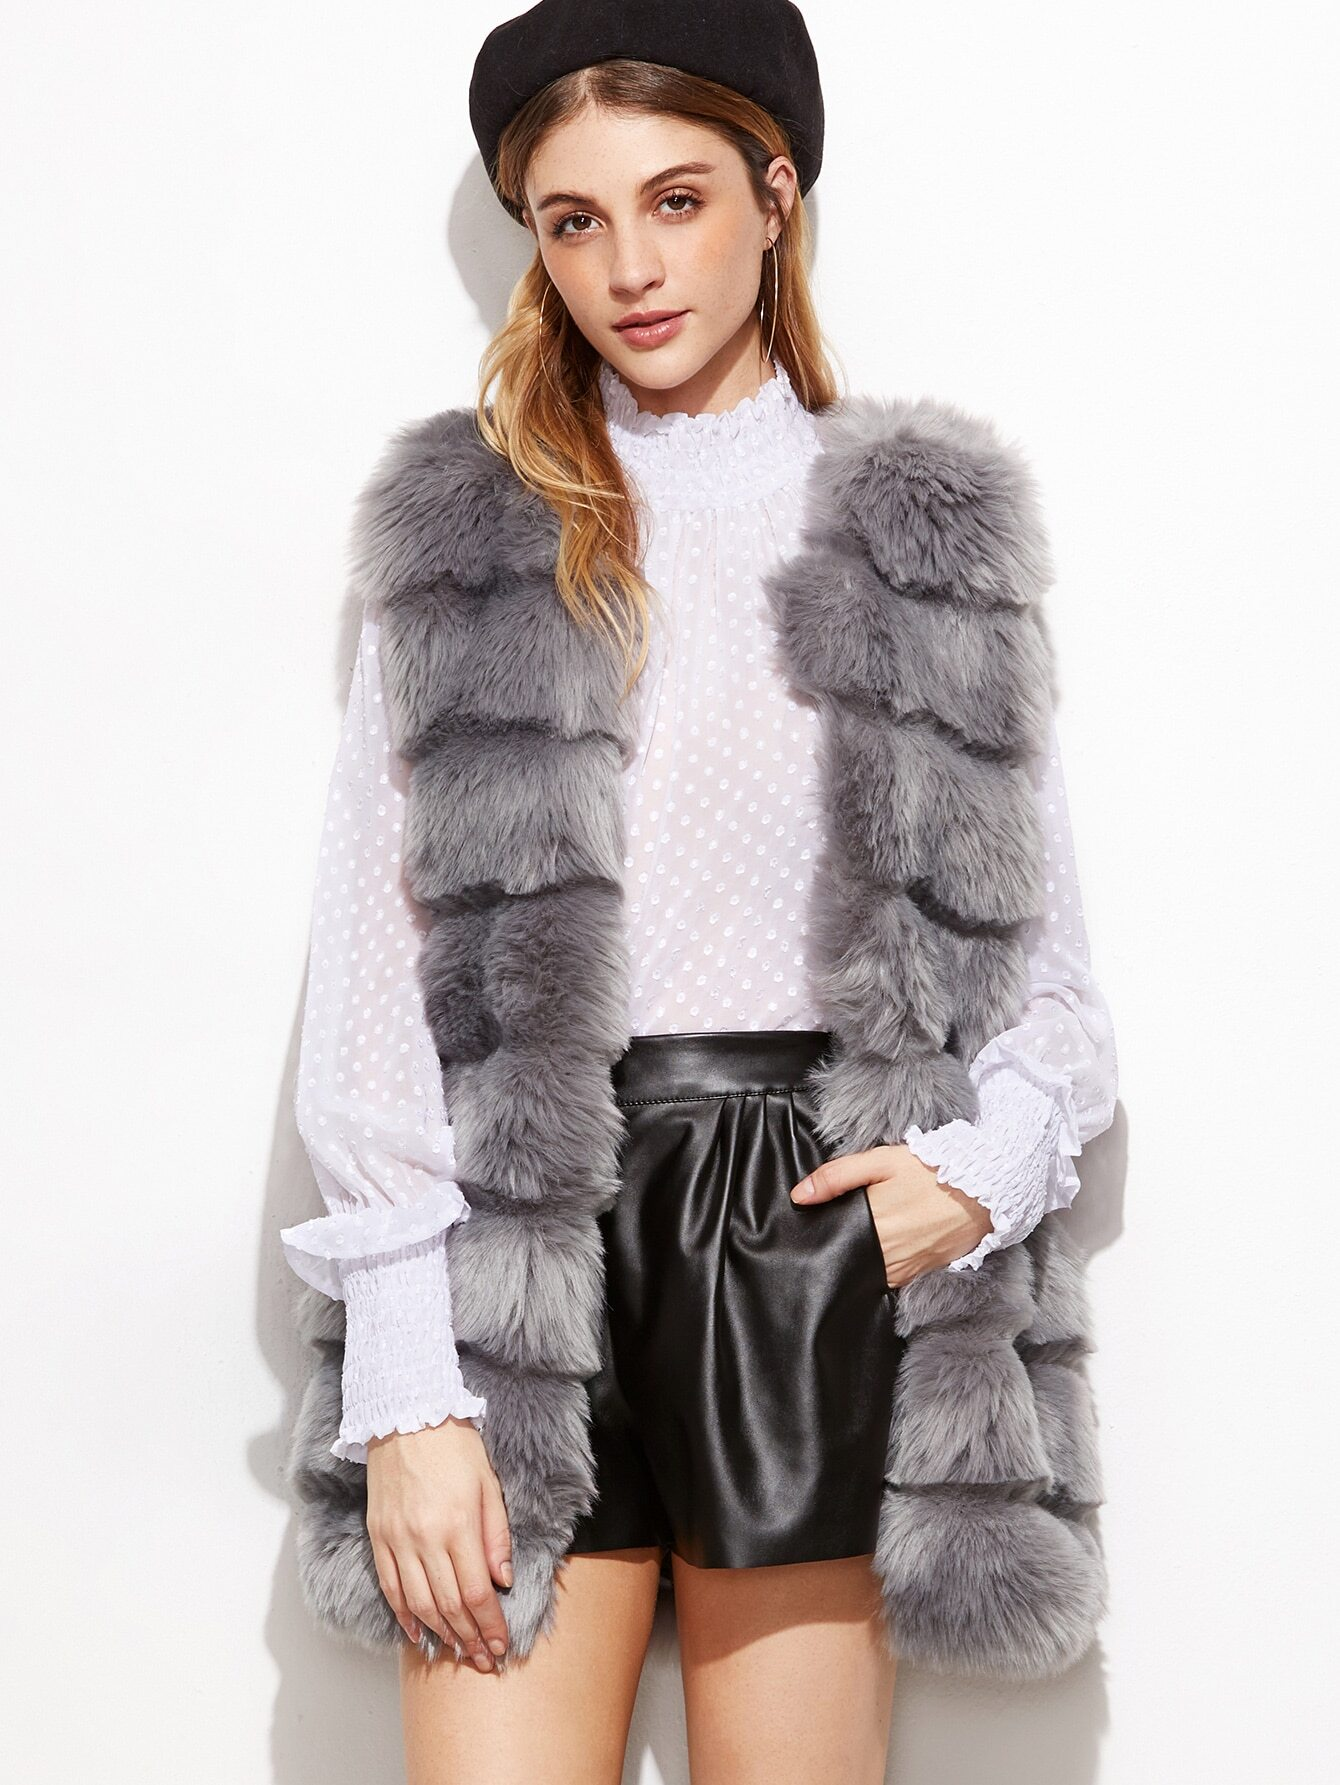 Shop our line of women's faux fur vests available in a variety of lengths with zip and hook closures and featuring a wide array of colors and animal prints.